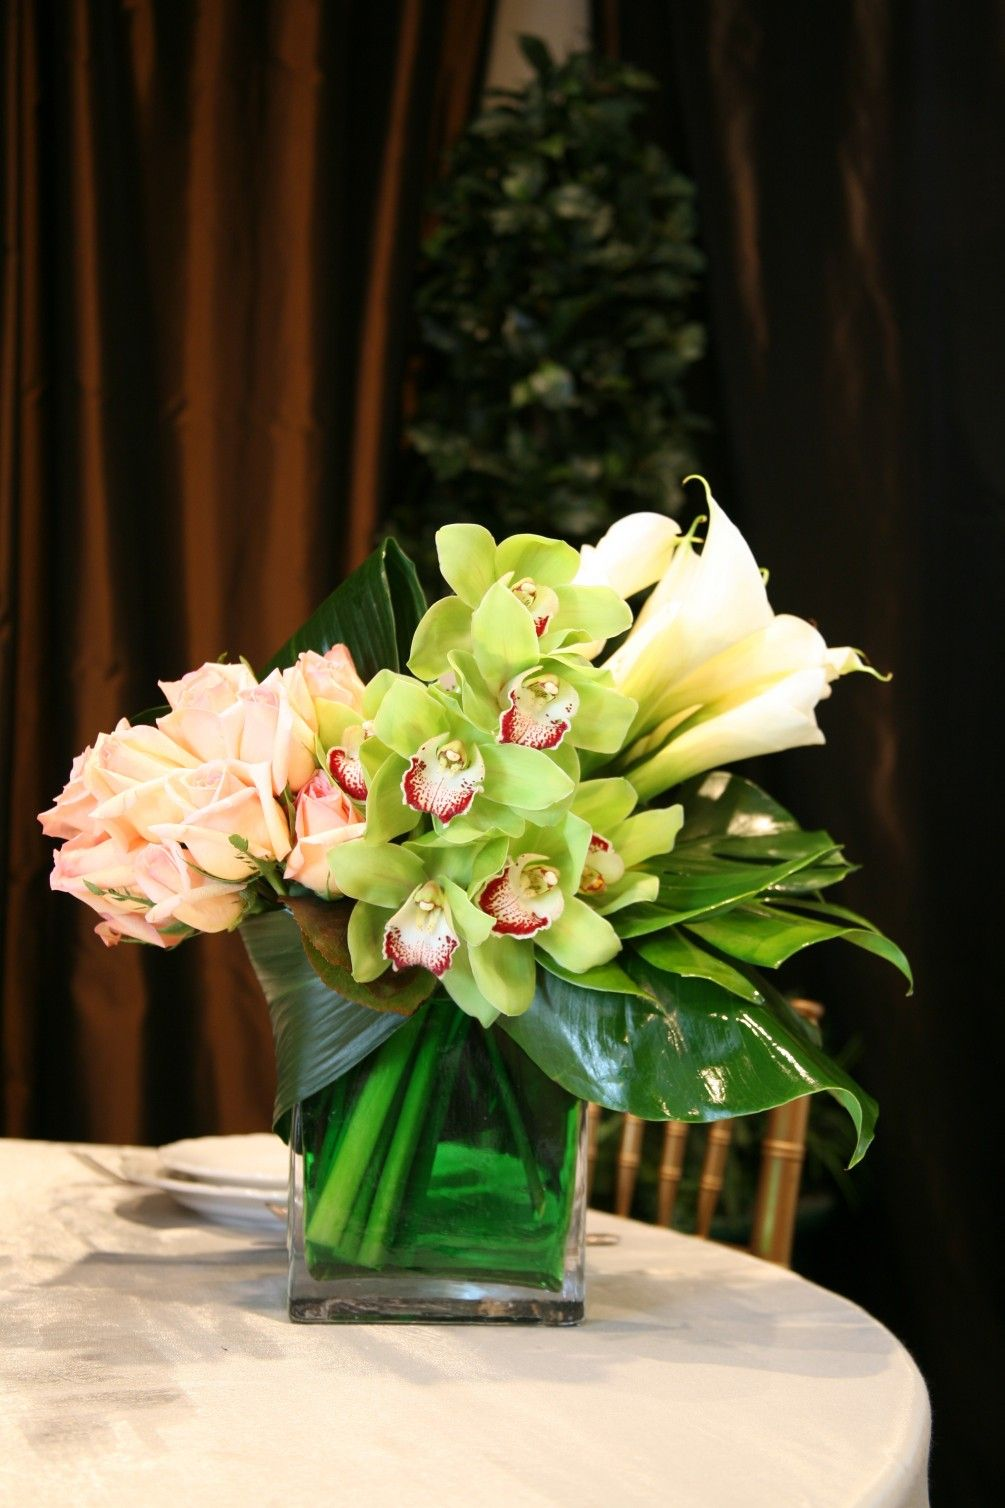 The Modern Medium Height Floral Arrangement Is Designed